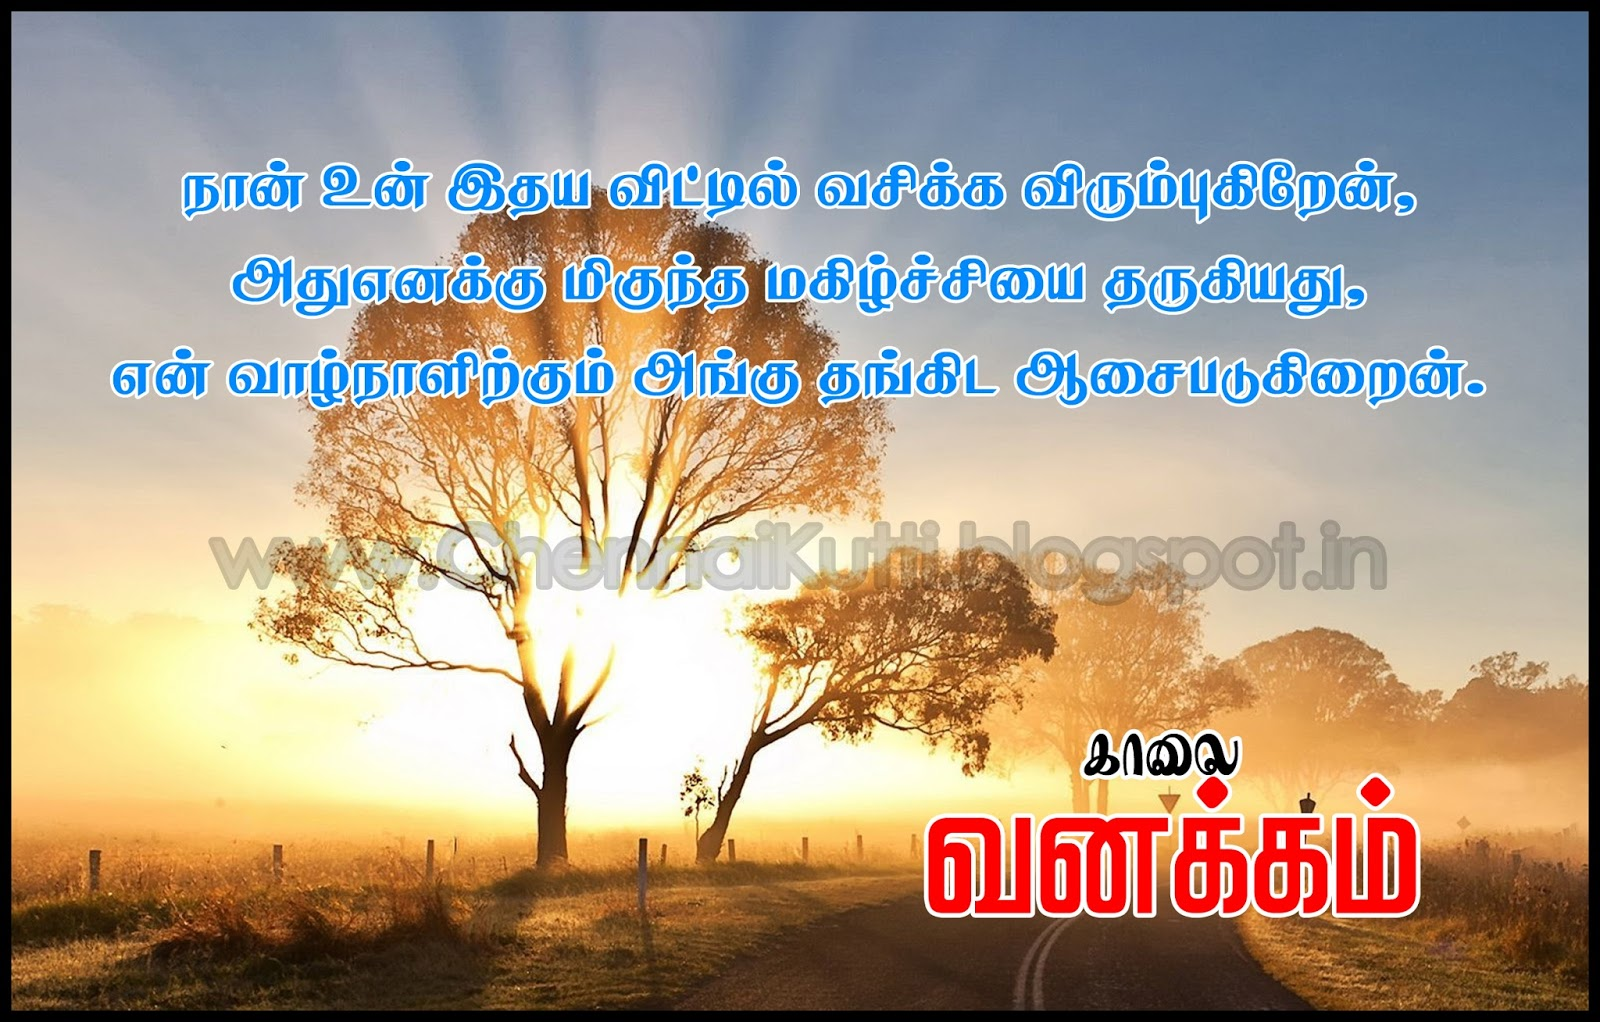 Morning Images With Quotes In Tamil